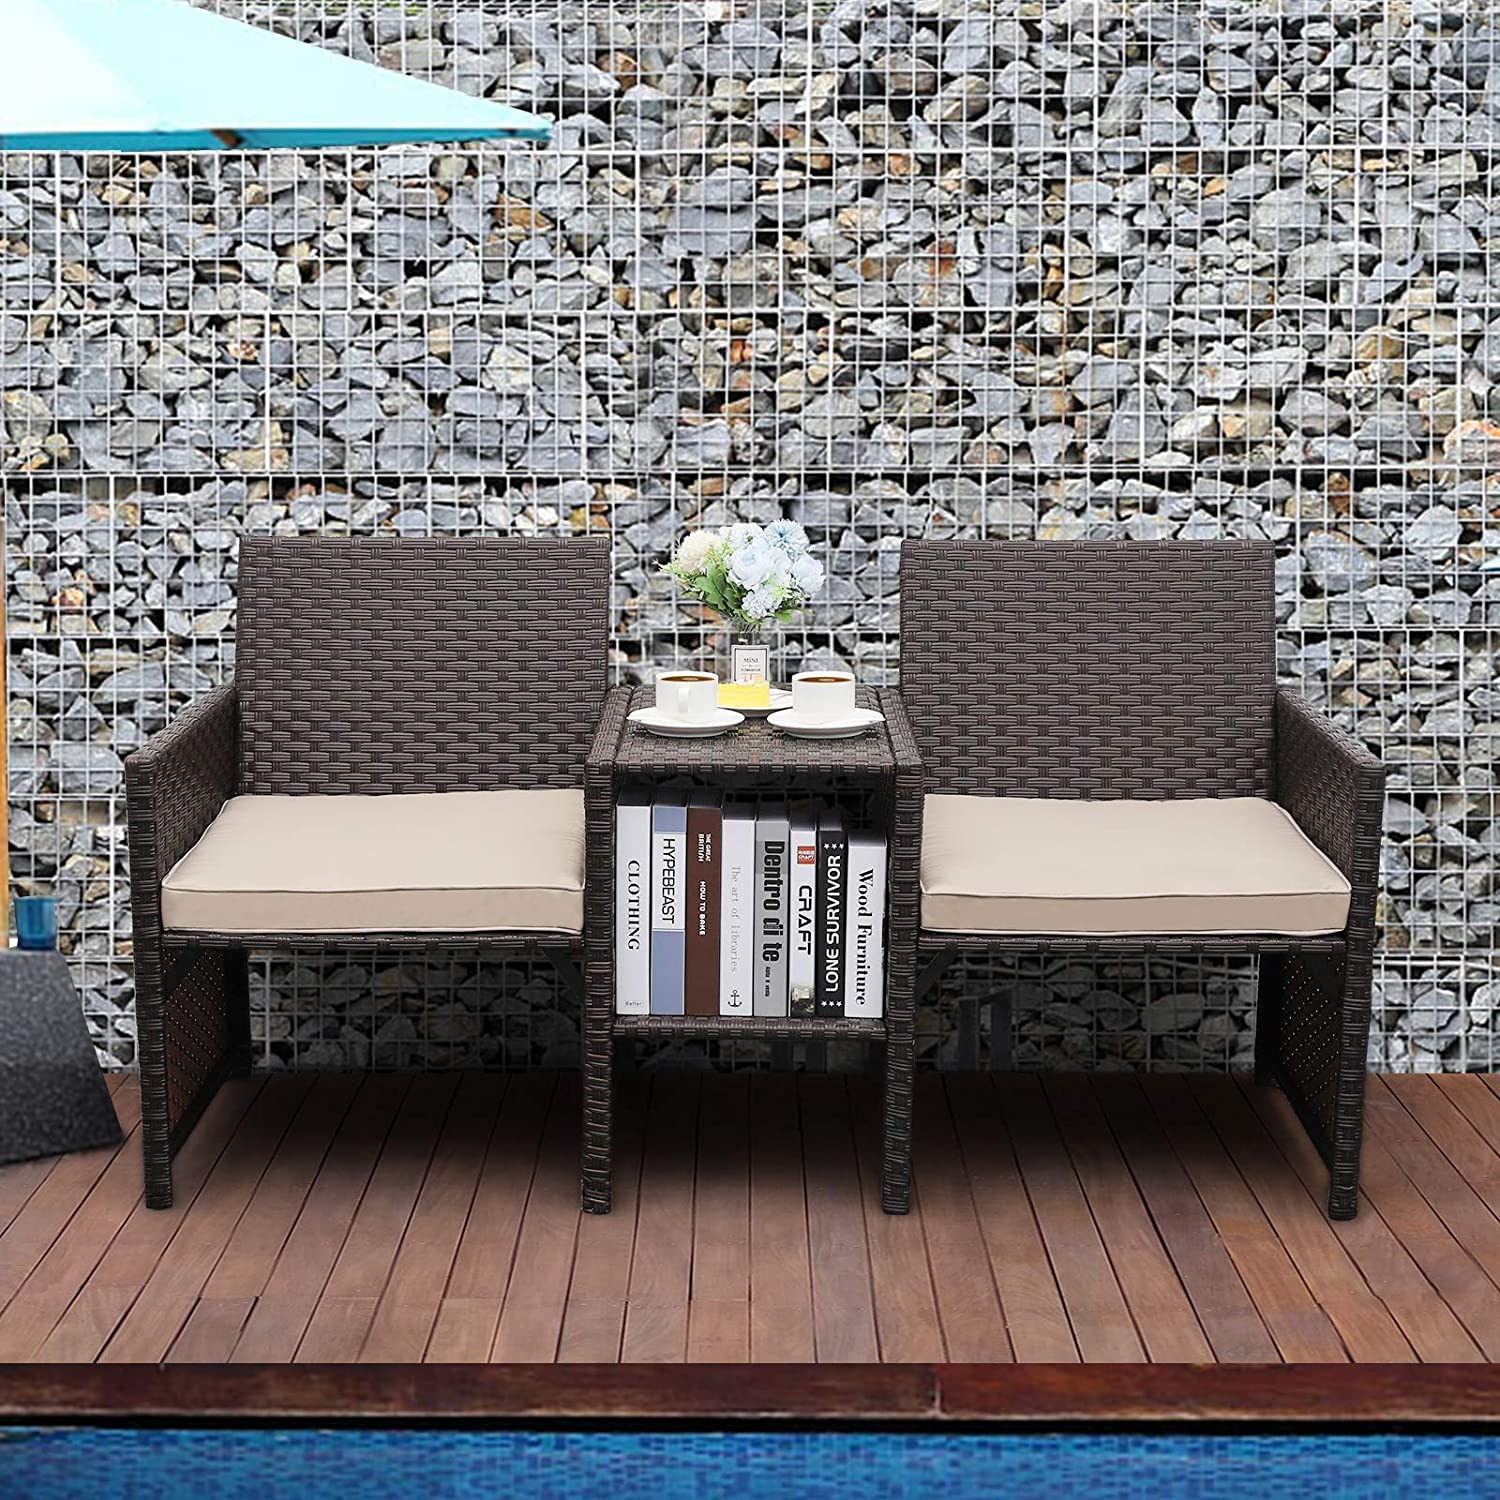 Valita Outdoor PE Wicker Loveseat Small Conversation Furniture Set Patio Rattan Bench seat with Table and Khaki Cushions